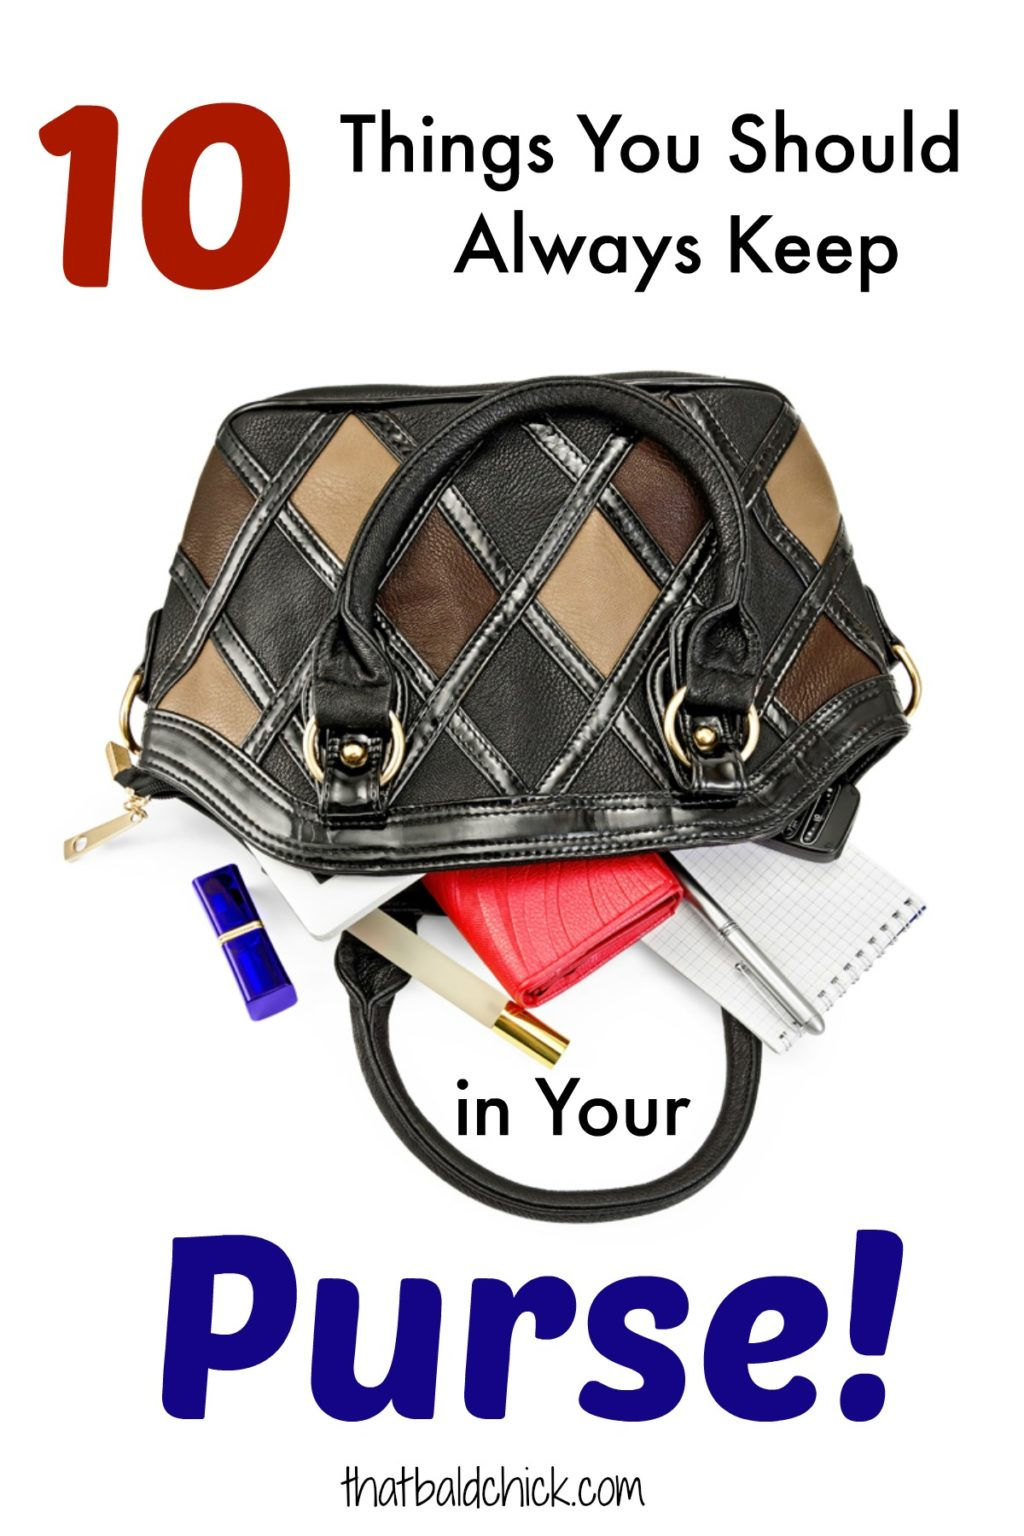 10 Things You Should Always Keep In Your Purse